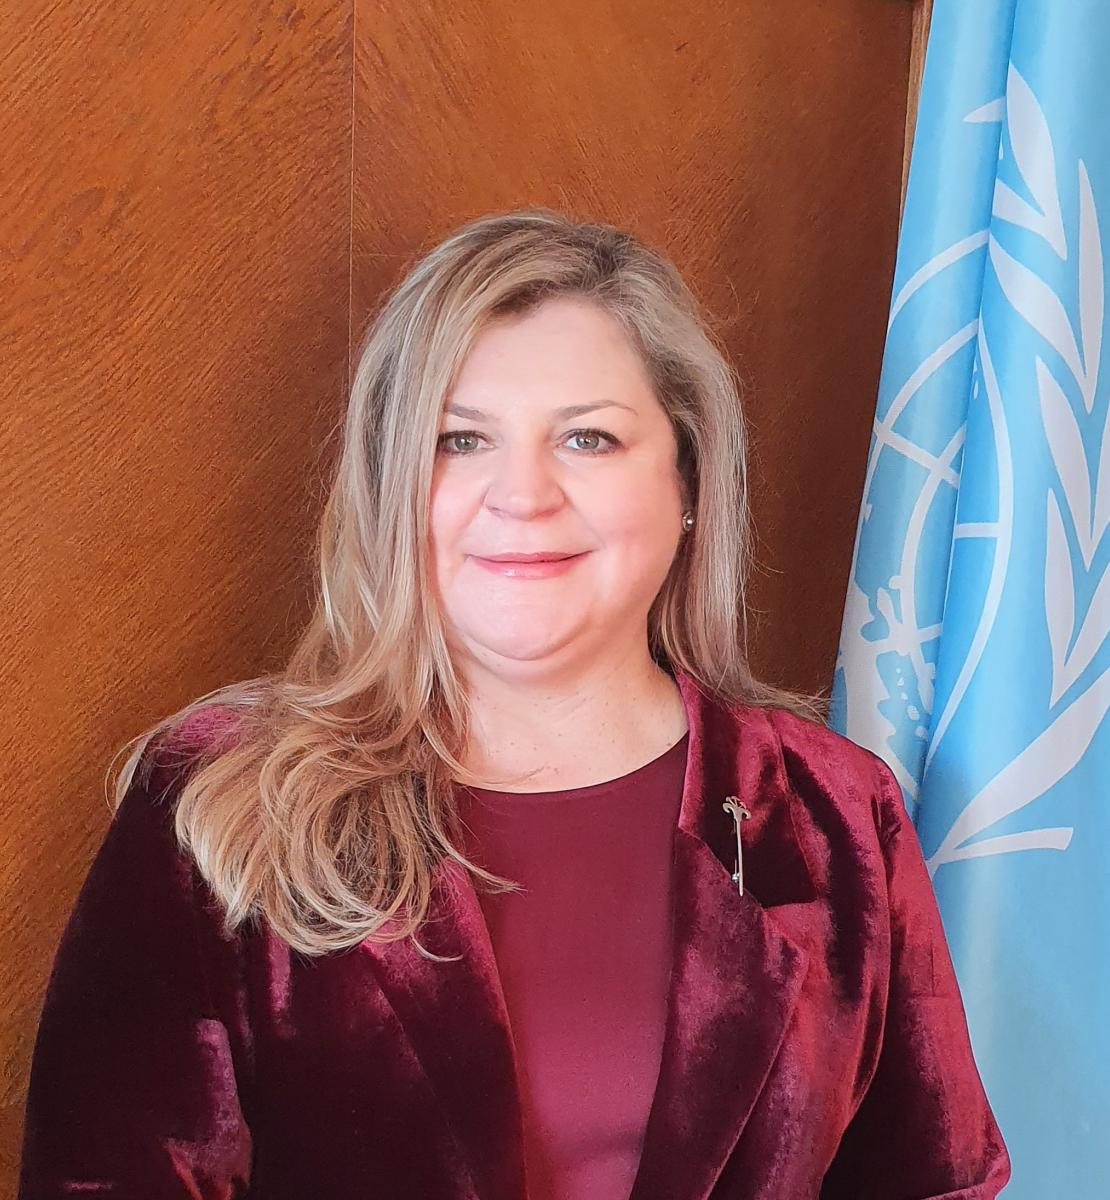 Official photo shows Catherine smiling to the camera, wearing a wine coloured jacket and blouse. She stands by the UN flag.